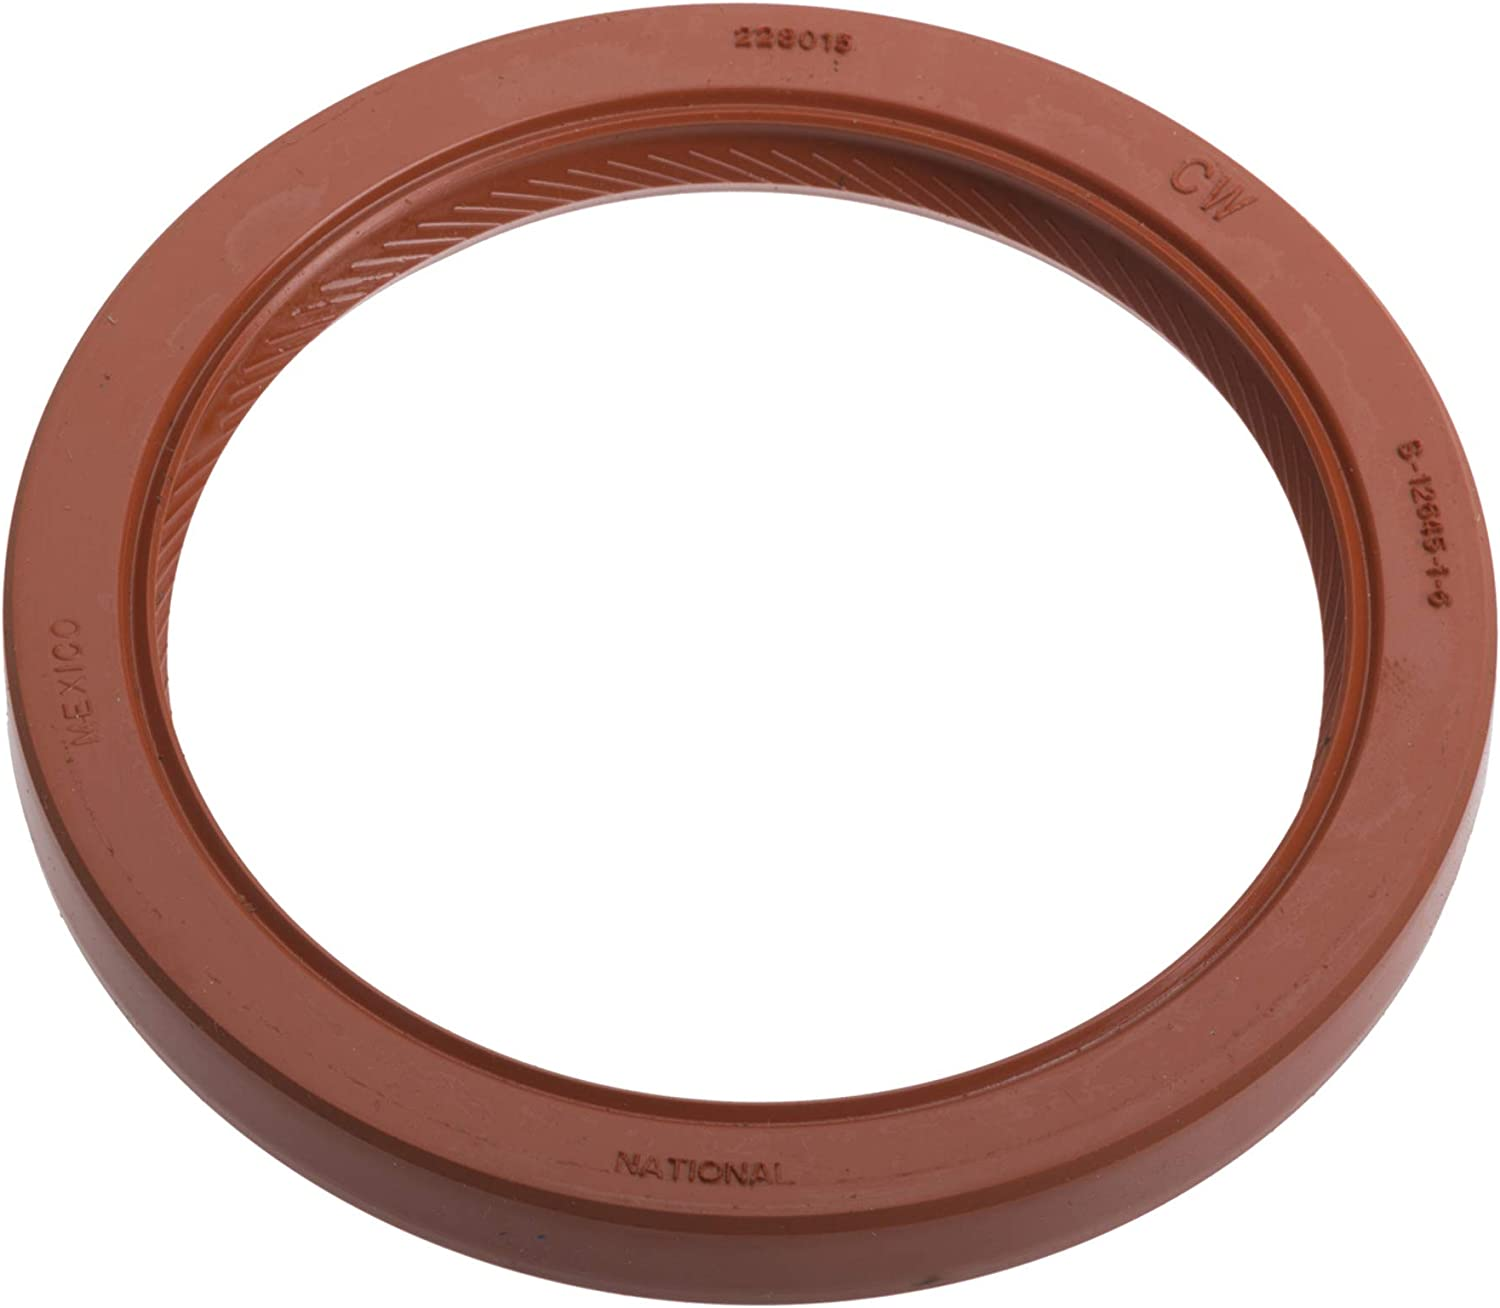 National 228015 Oil Seal